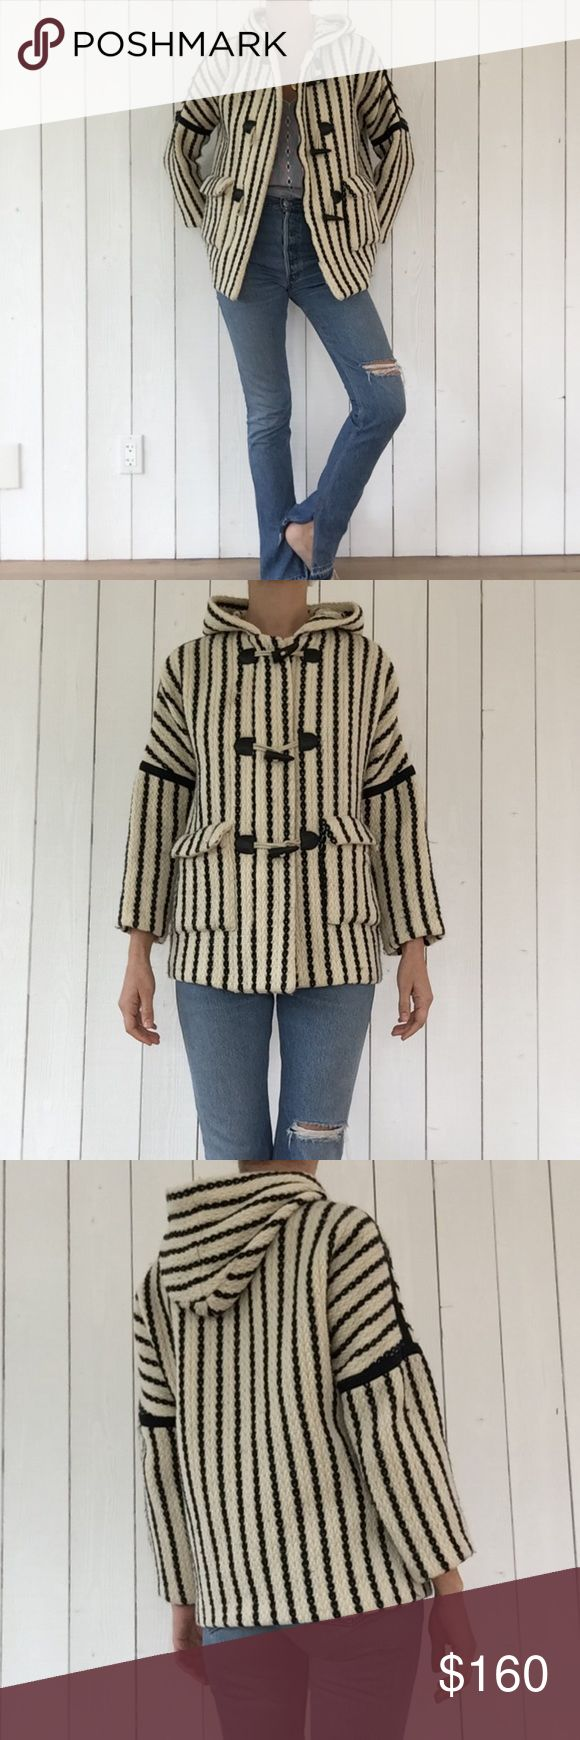 Vintage Anna Sui Jacket Adorable dark navy and cream striped Anna Sui jacket with hood. Slightly cropped sleeve and a relaxed fit. Zipper and toggle button closures, unlined. Good used vintage condition. Tag says 2 which I'm calling a M. Assuming it was sizing 1,2,3. Anna Sui Jackets & Coats